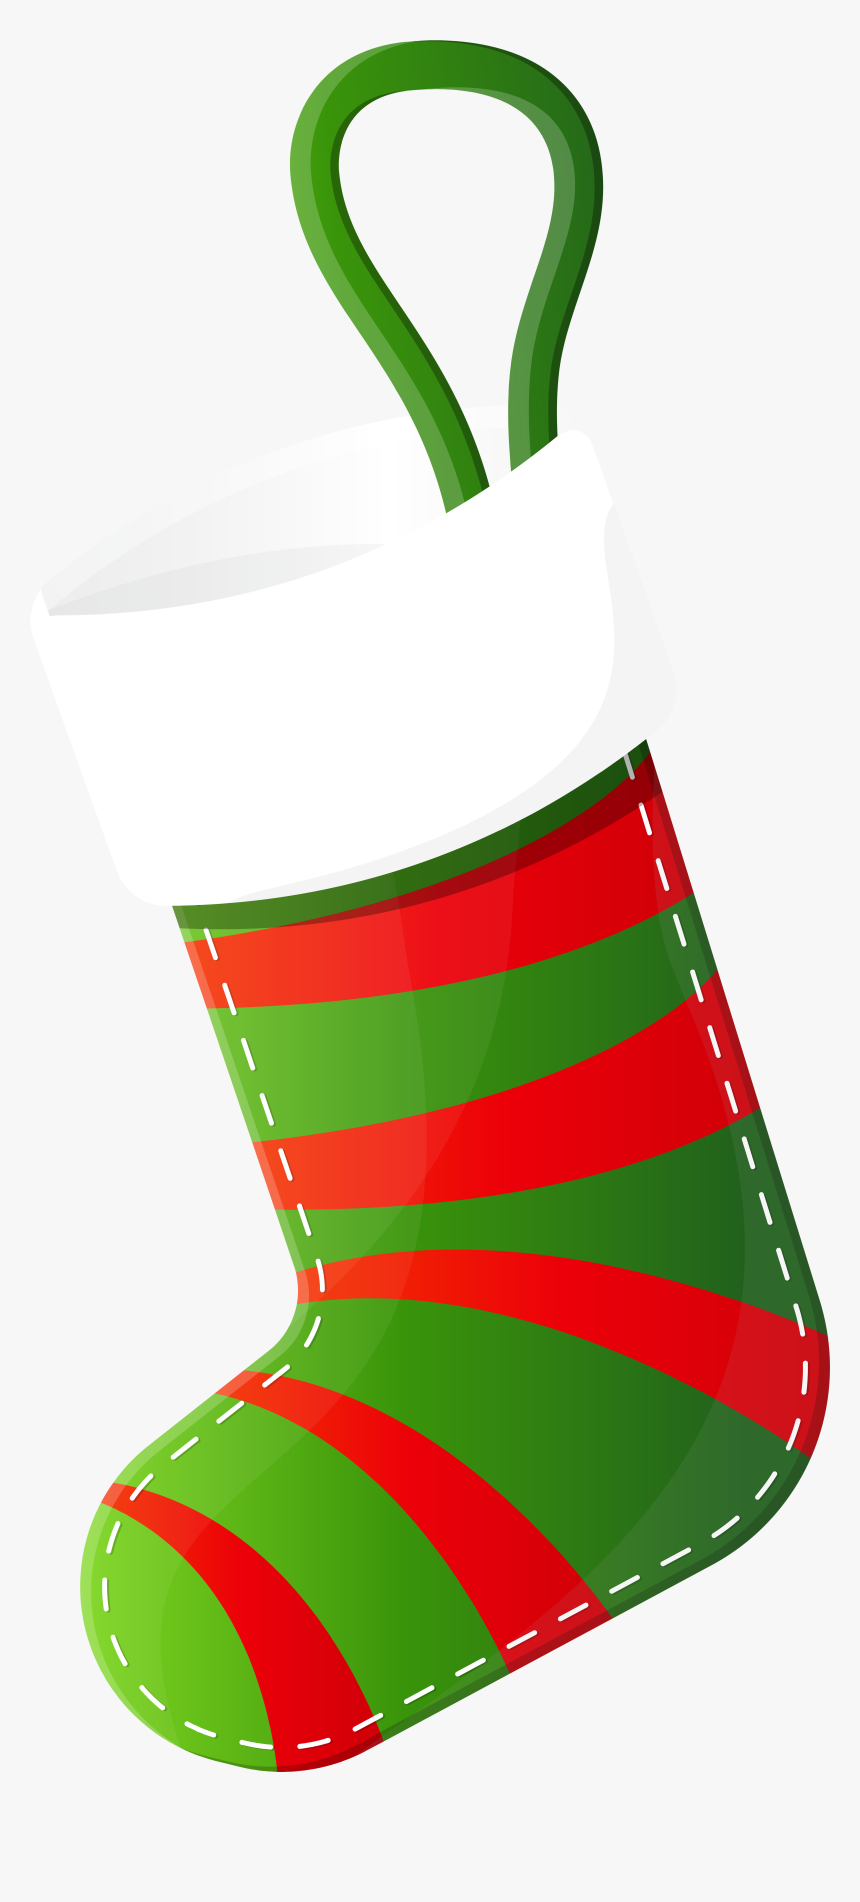 Christmas Stocking Clip Art - Christmas Stocking Image Transparent, HD Png Download, Free Download